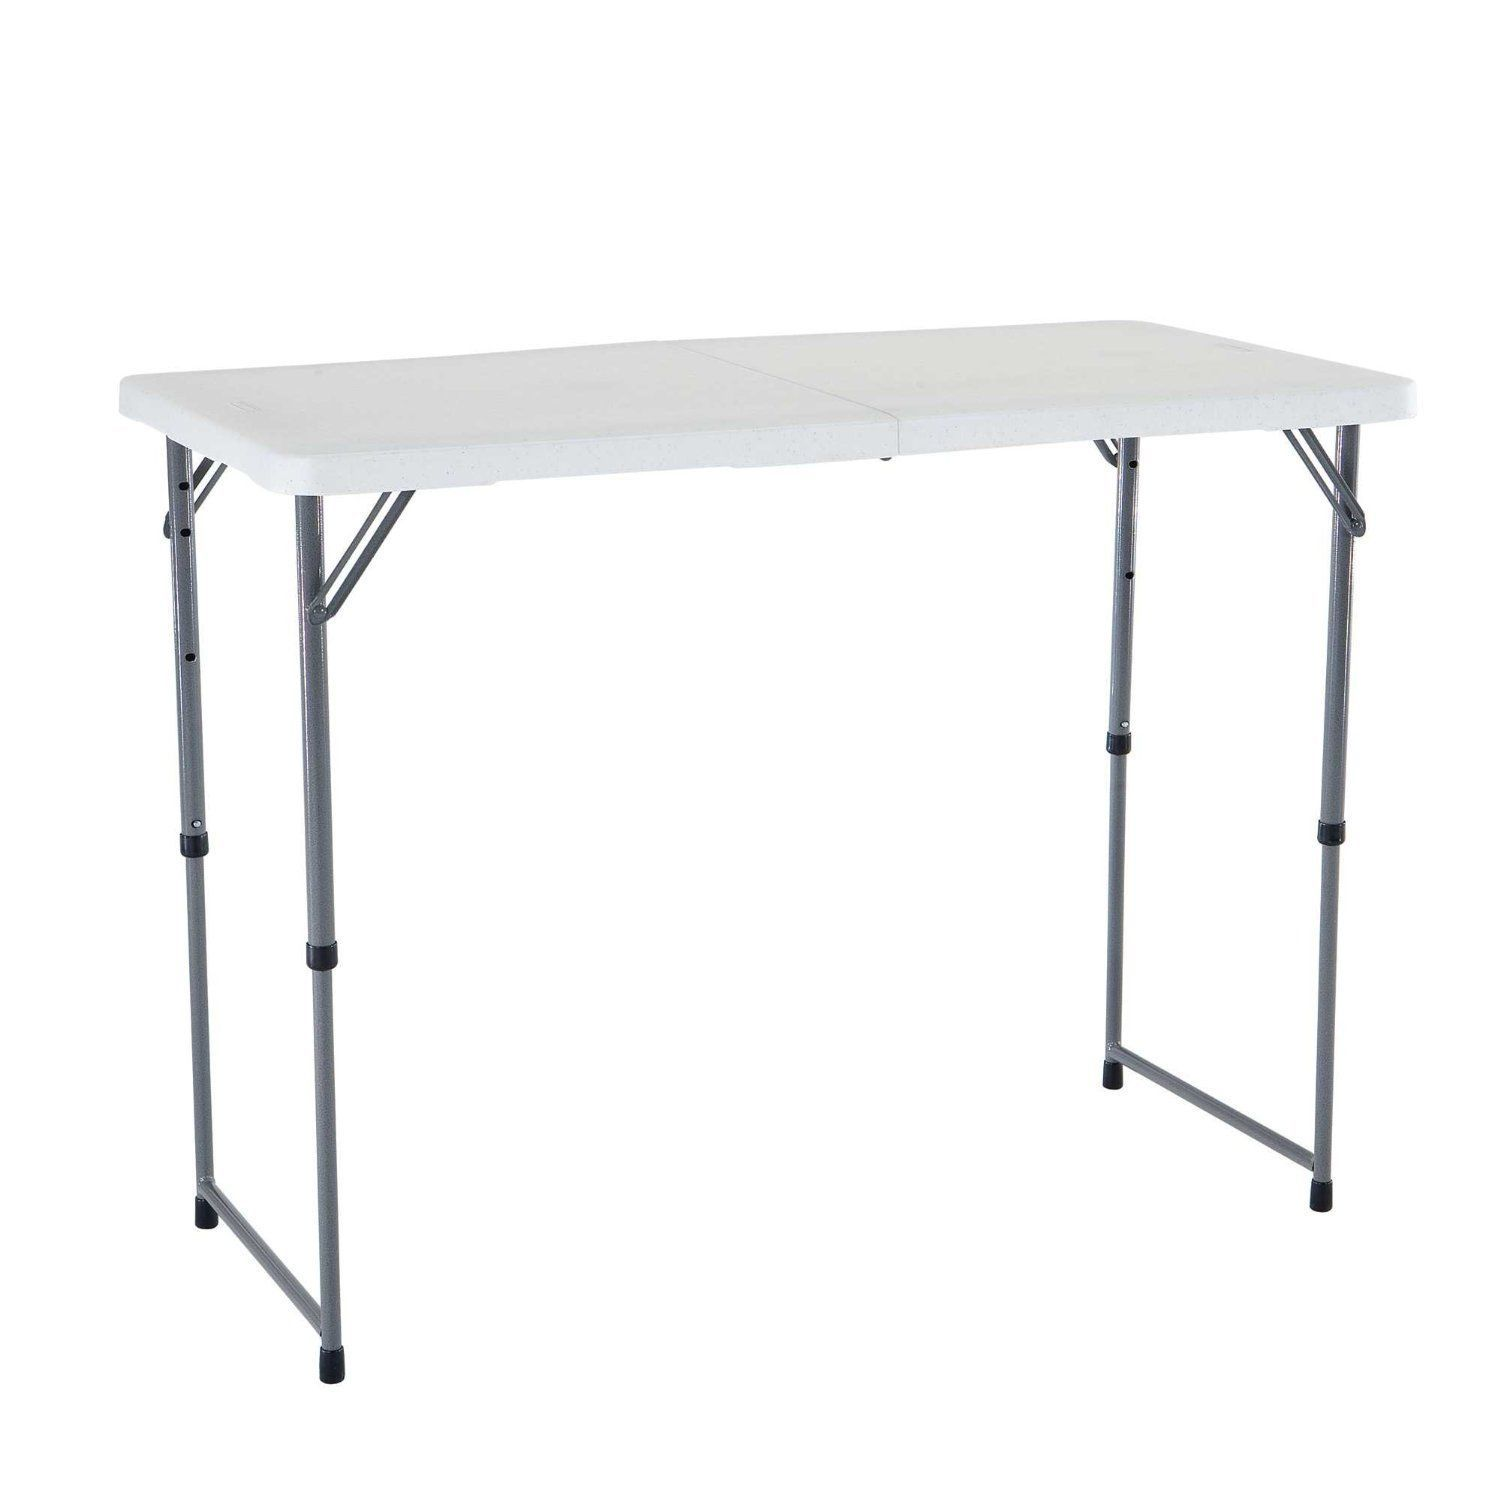 4 ft adjustable height folding utility table portable with - Camping table adjustable height ...